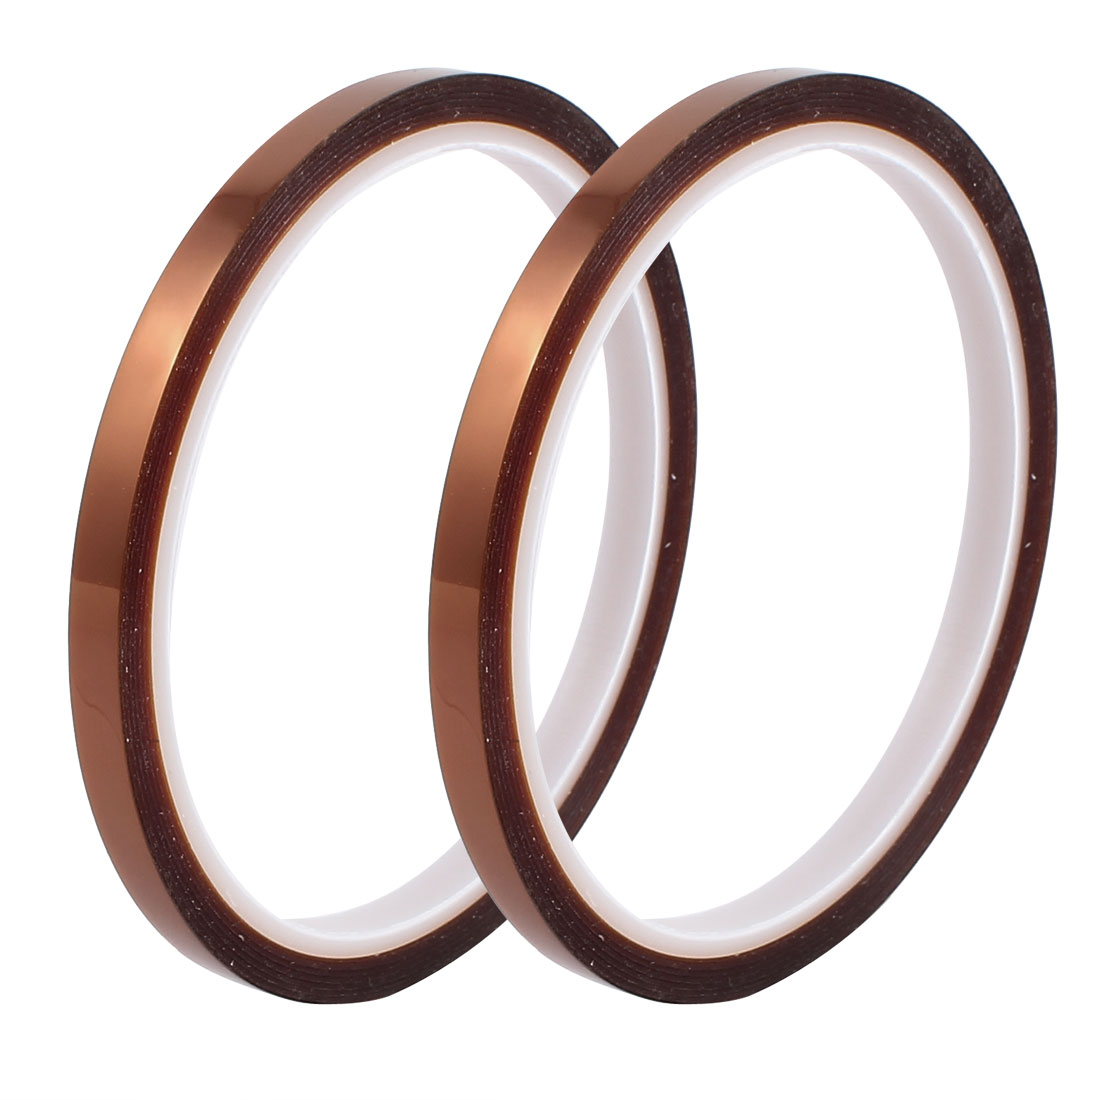 2 Pcs 6mm Width 30M Length High Temp Heat Resistant Polyimide Tape Brown